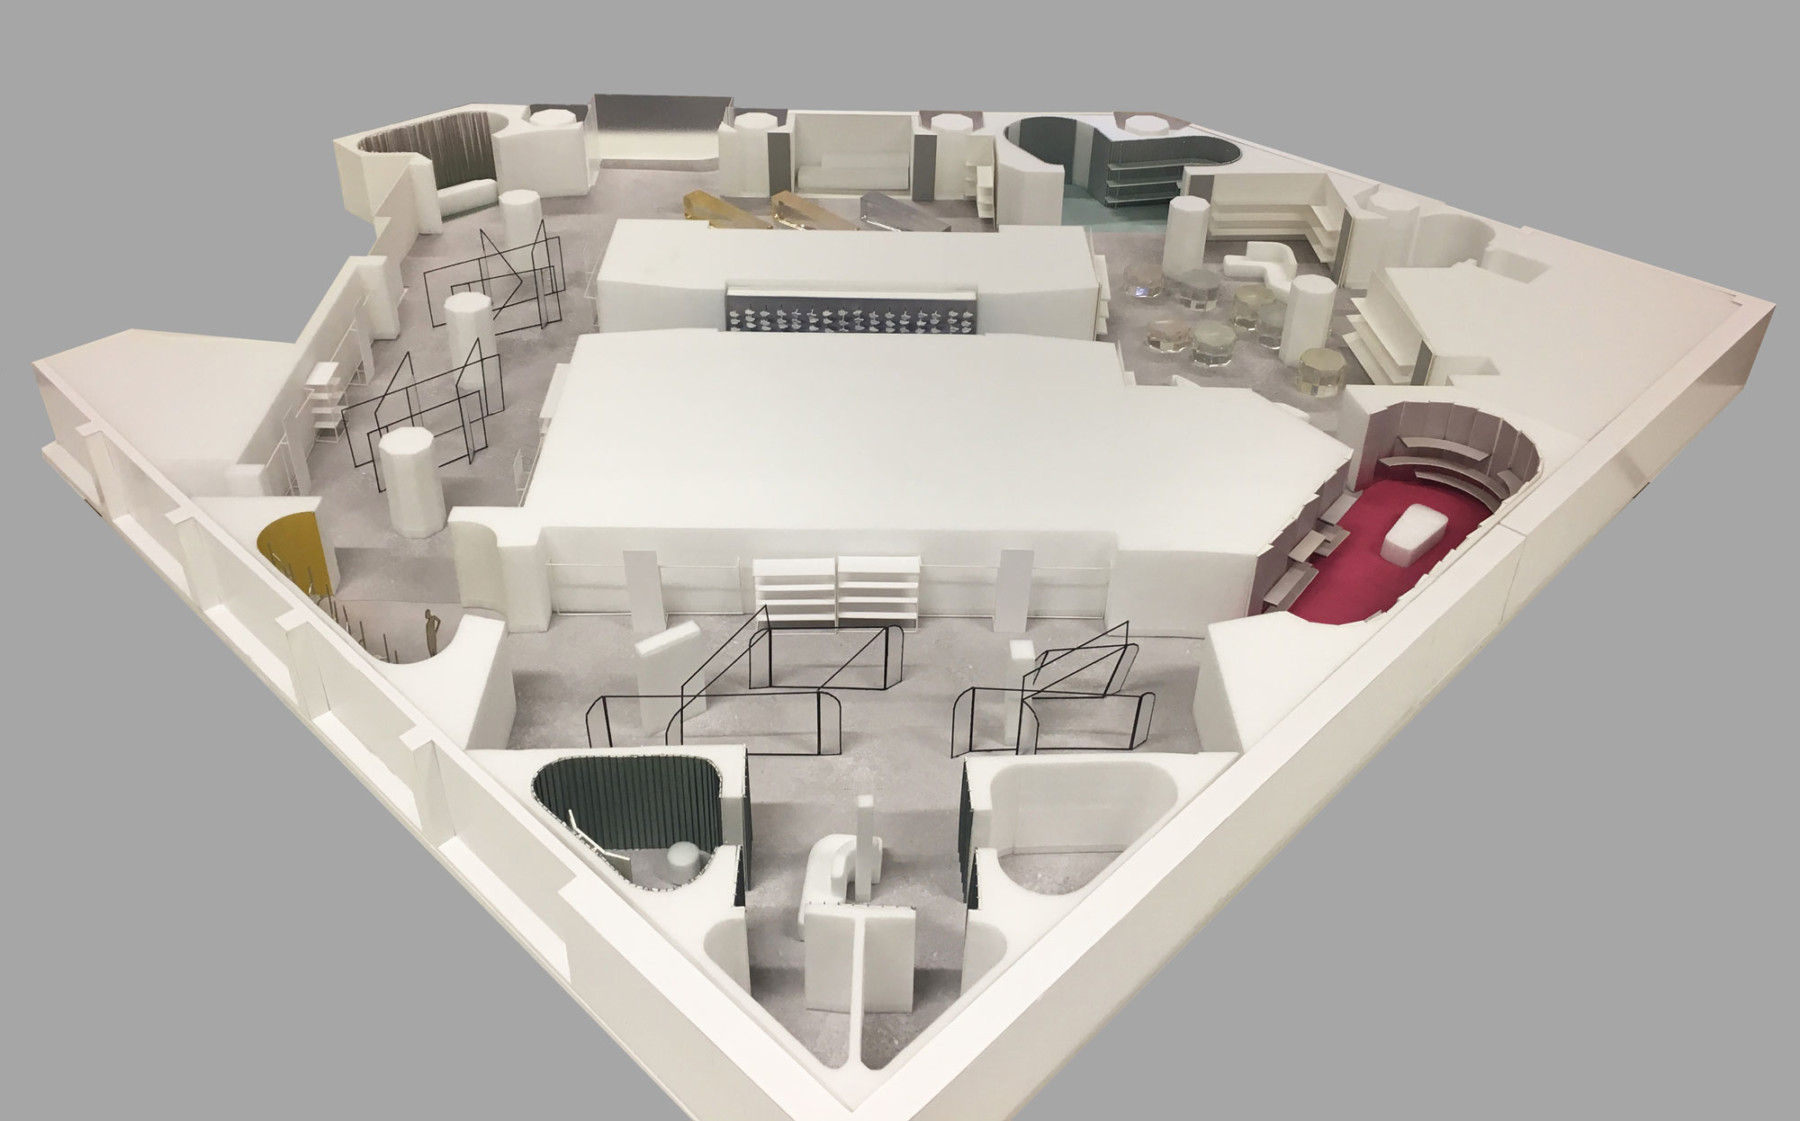 Jamie-fobert-Architects-it-luxury-retail-beautiful-architectural-model-resin-plan